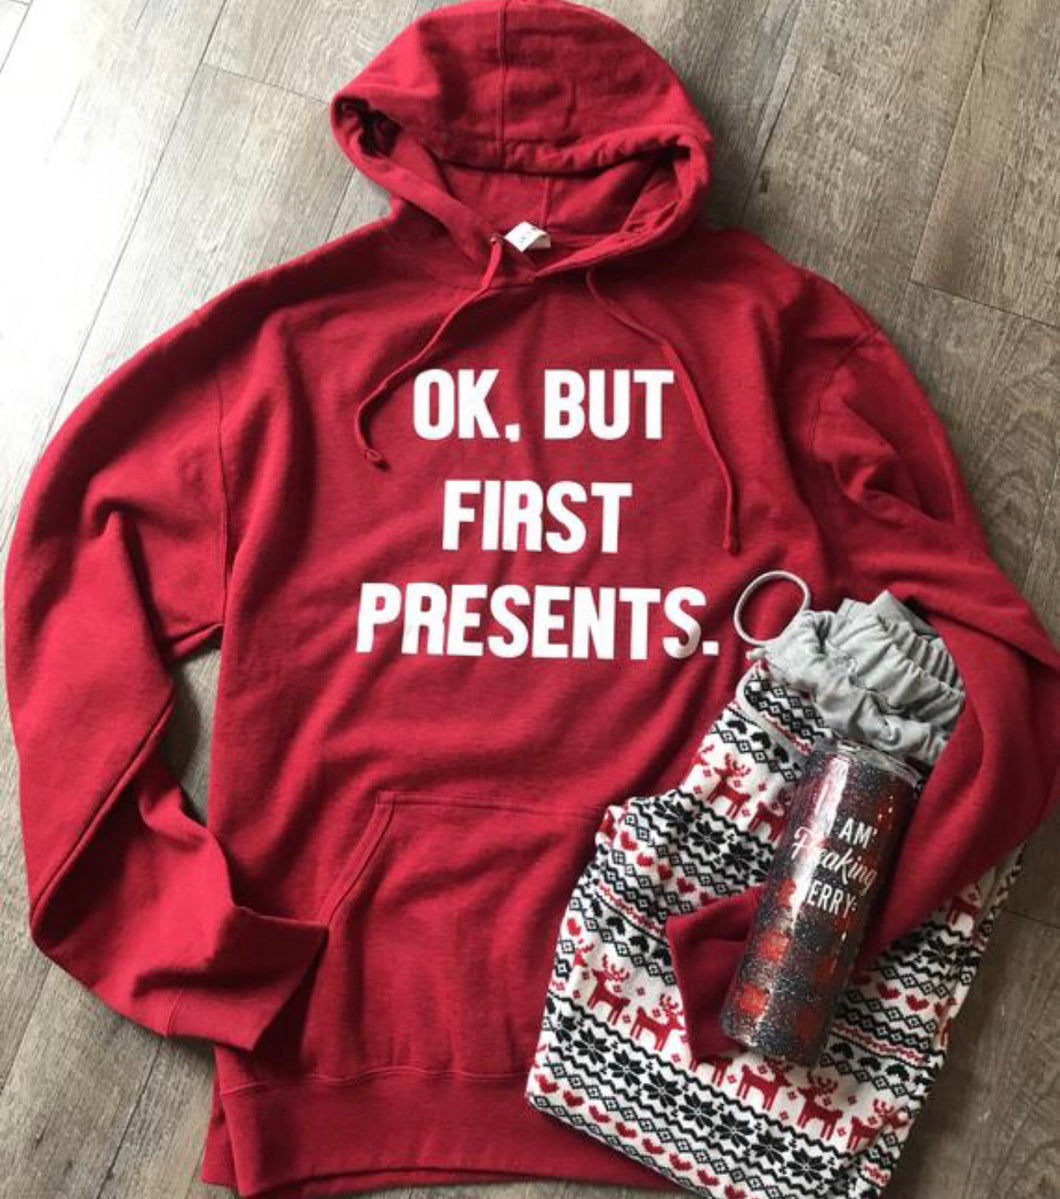 Ok but first presents funny christmas hoodie sweatshirt in red - Mavictoria Designs Hot Press Express